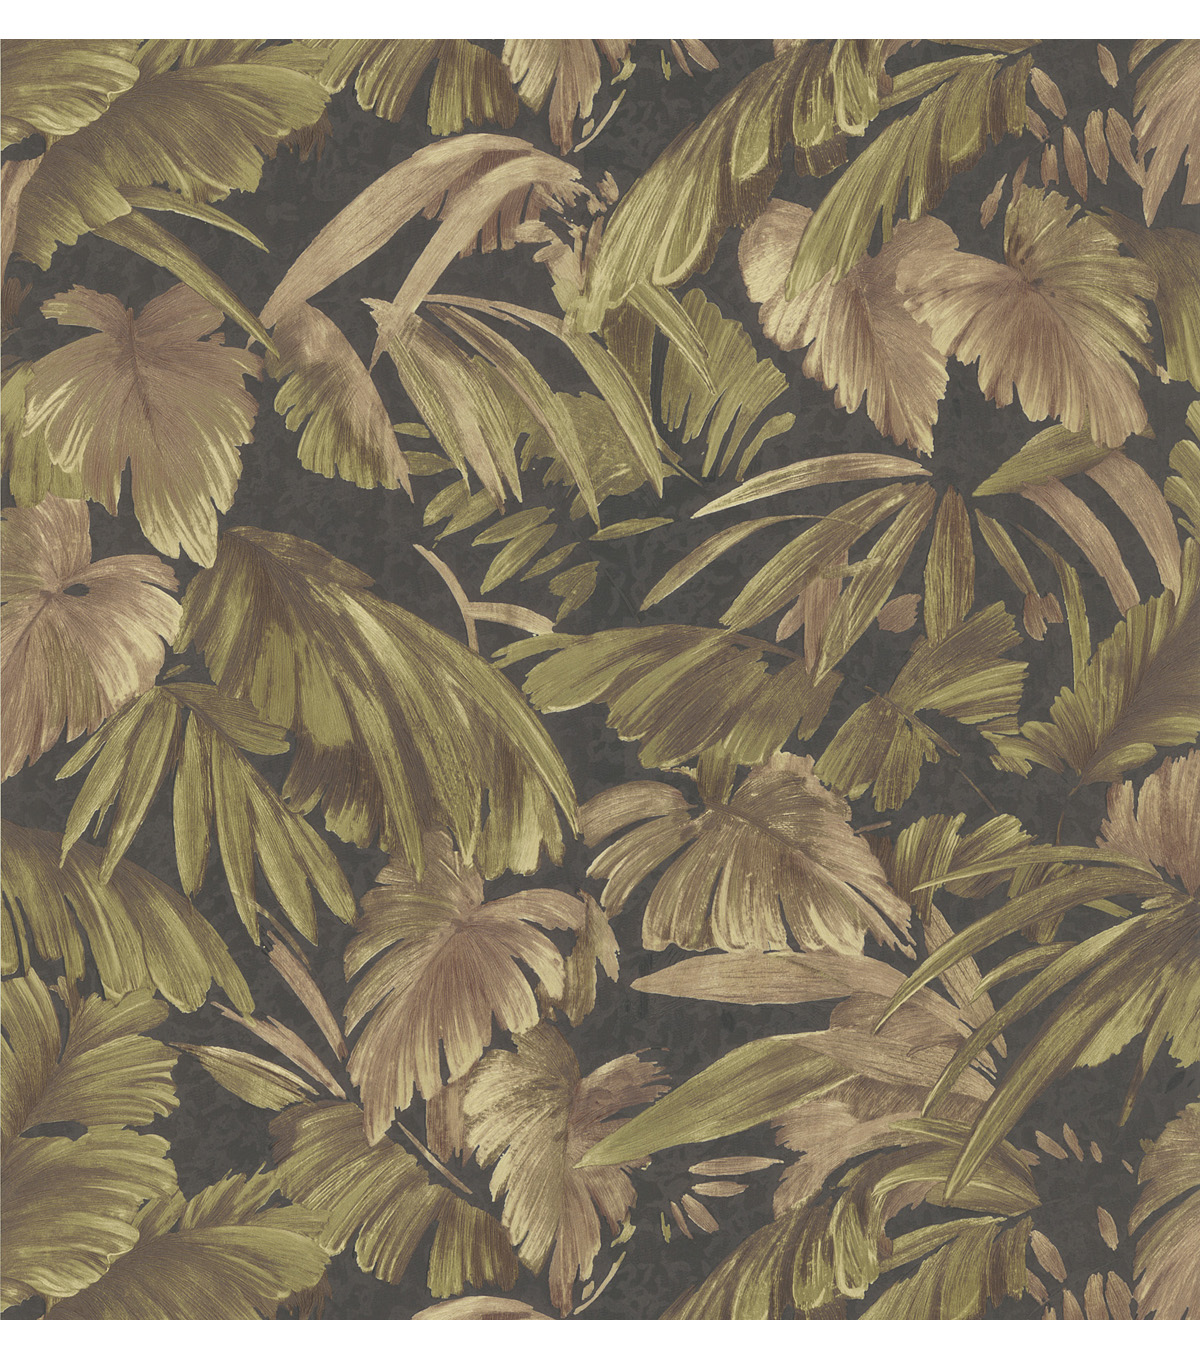 Delfino Black Leaves Wallpaper Sample